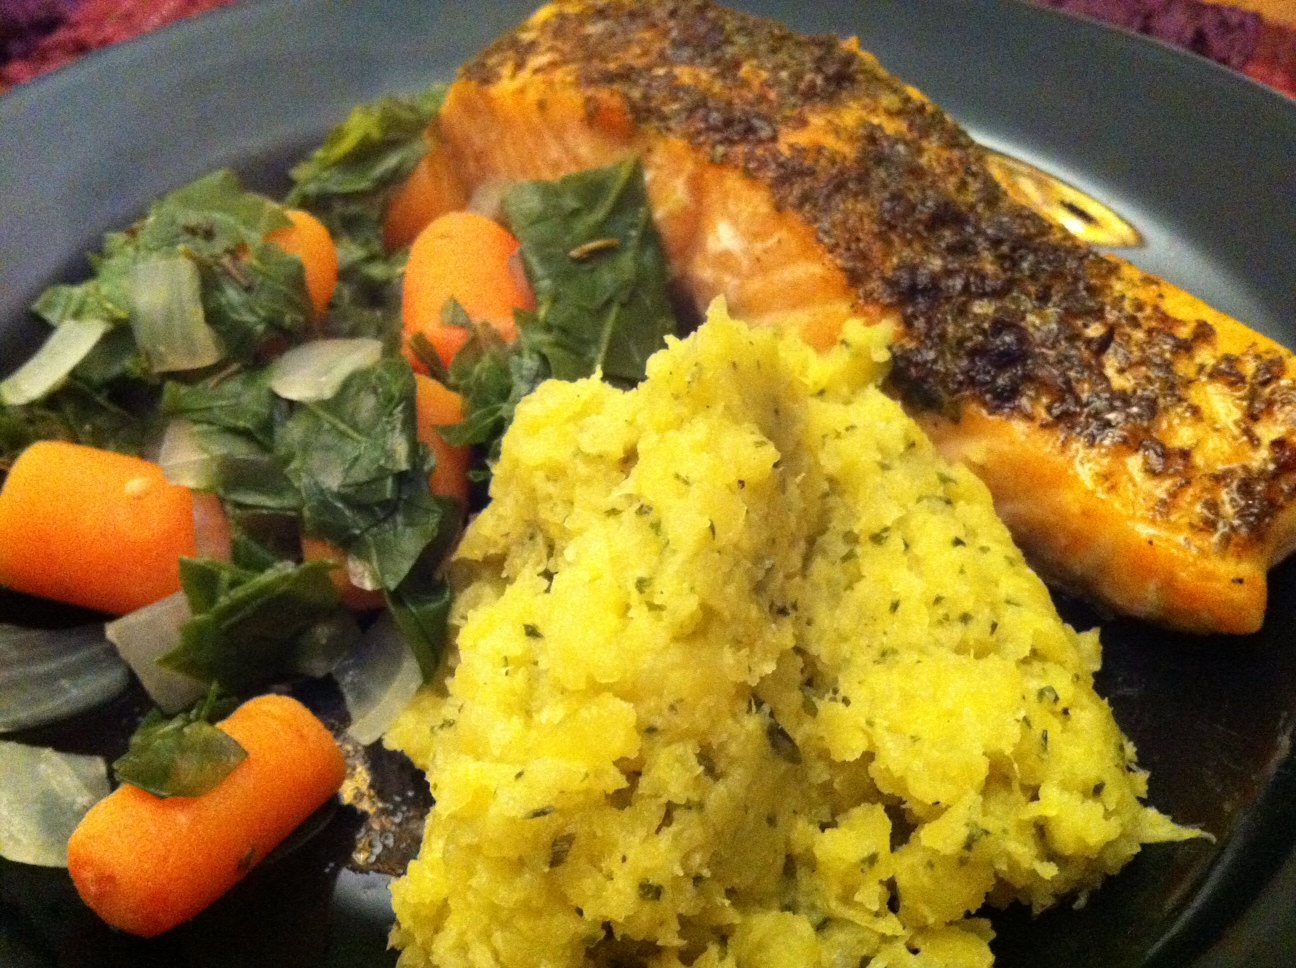 ... with Fresh Greens & Carrots and a side of Rutabaga Mash | Reckermended